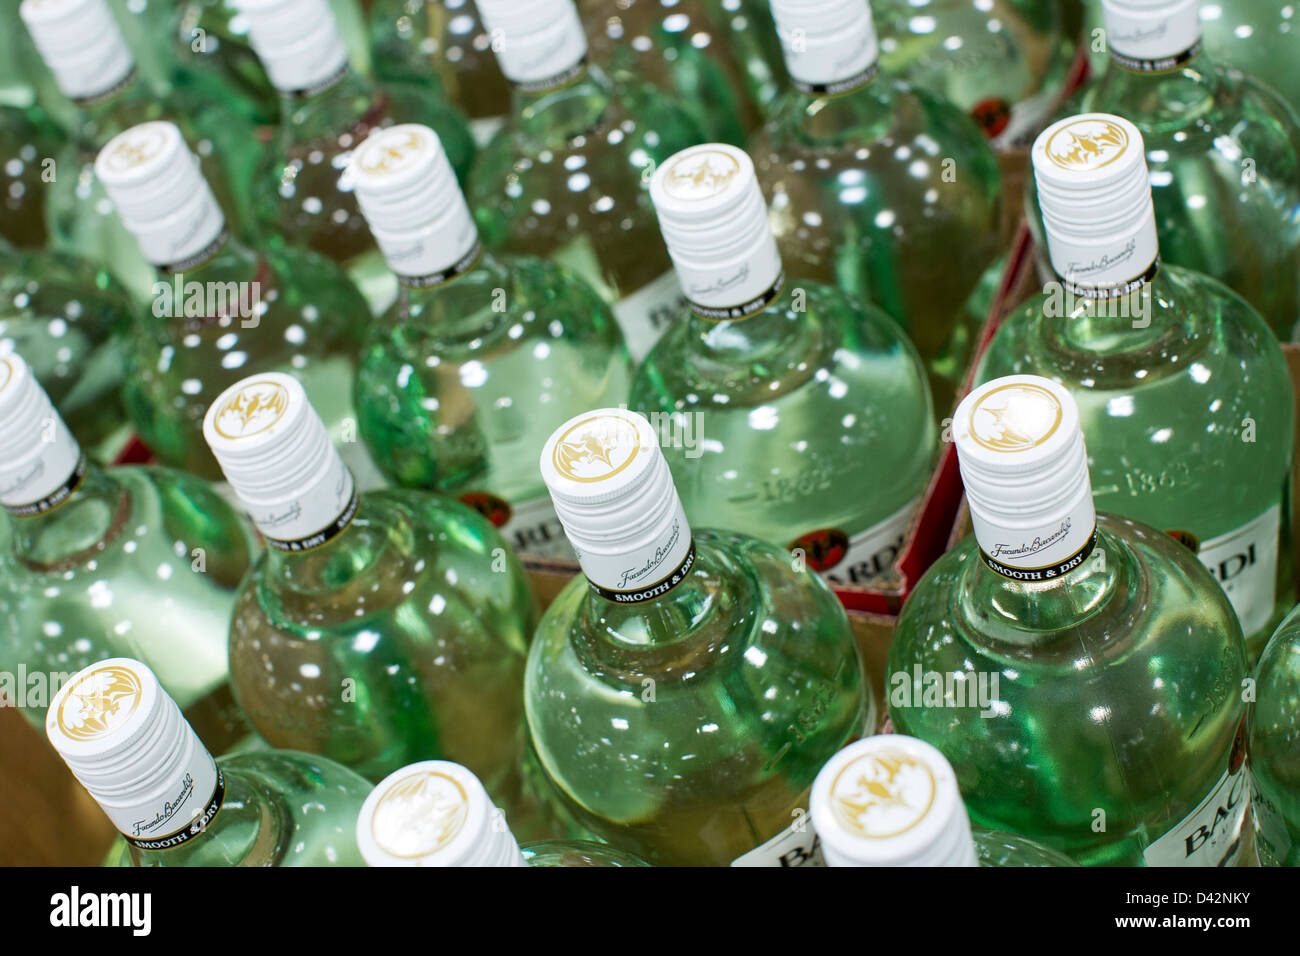 Bacardi rum on display at a costco wholesale warehouse club stock bacardi rum on display at a costco wholesale warehouse club stock photo 54150655 alamy thecheapjerseys Images